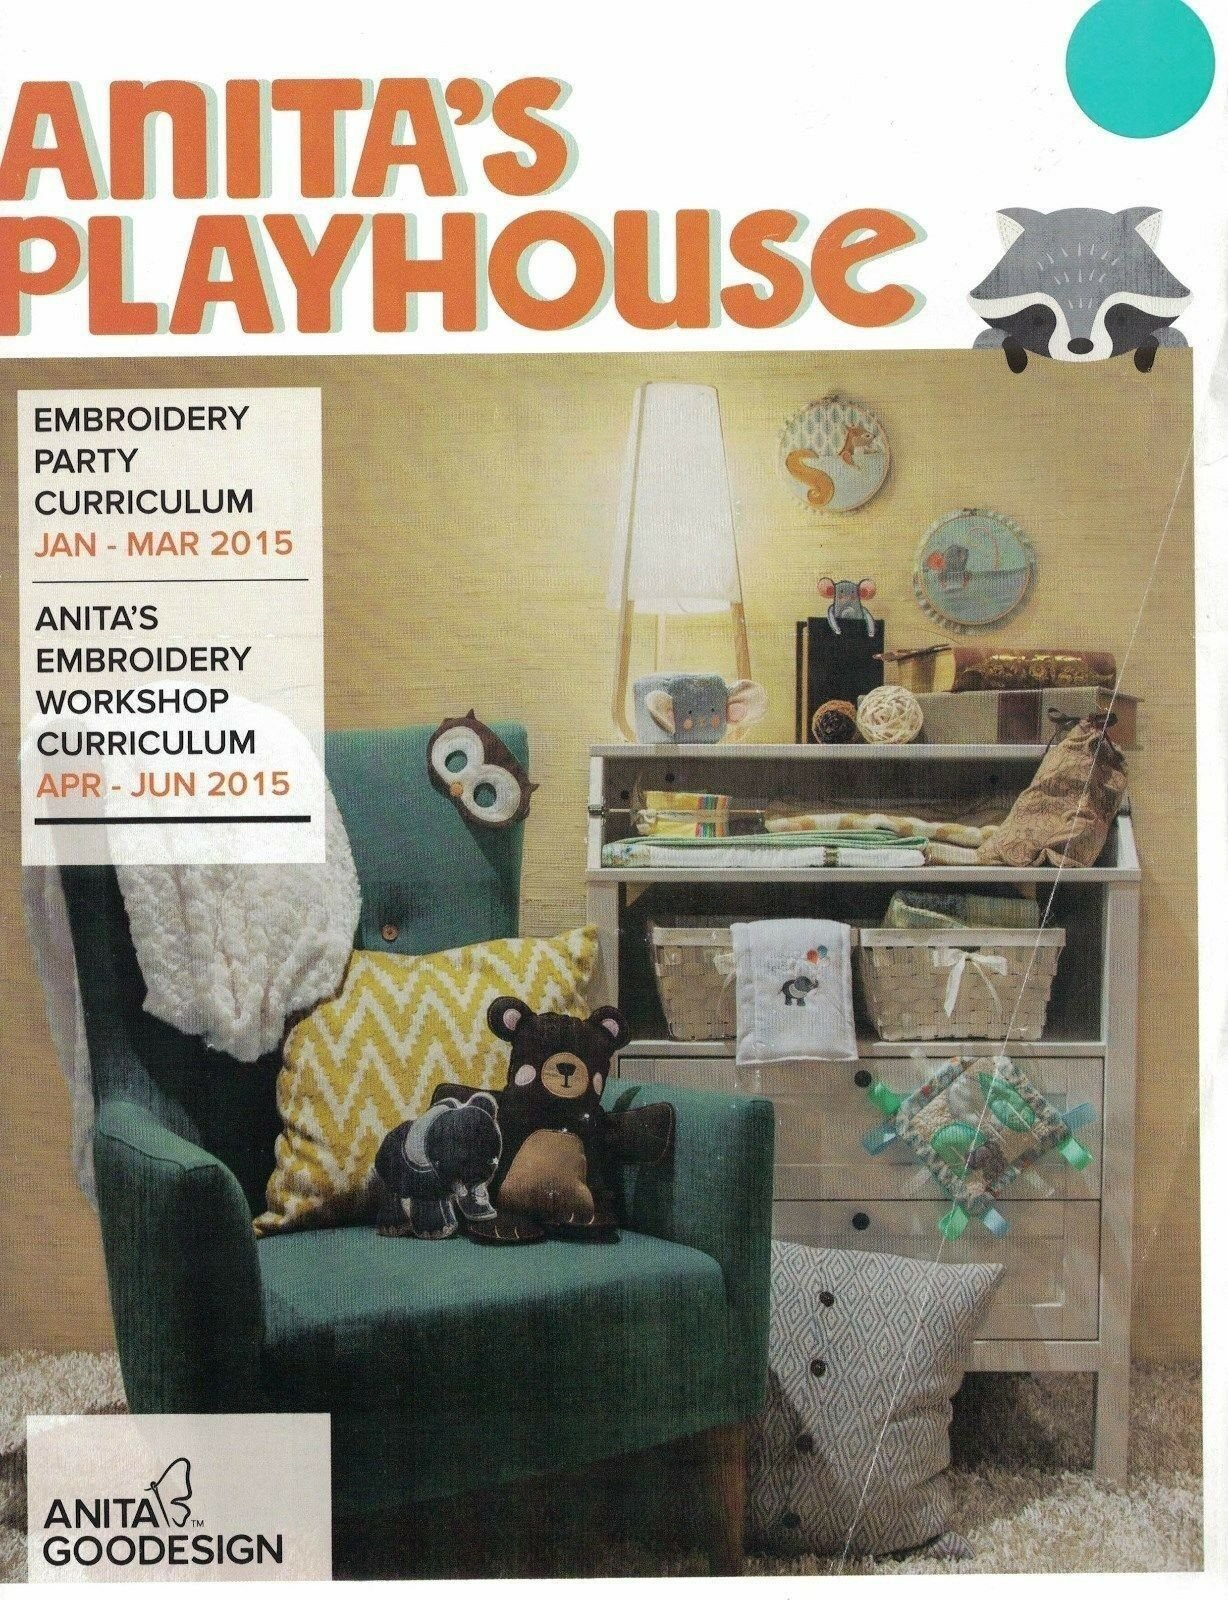 Anita's Playhouse Embroidery Party Curriculum